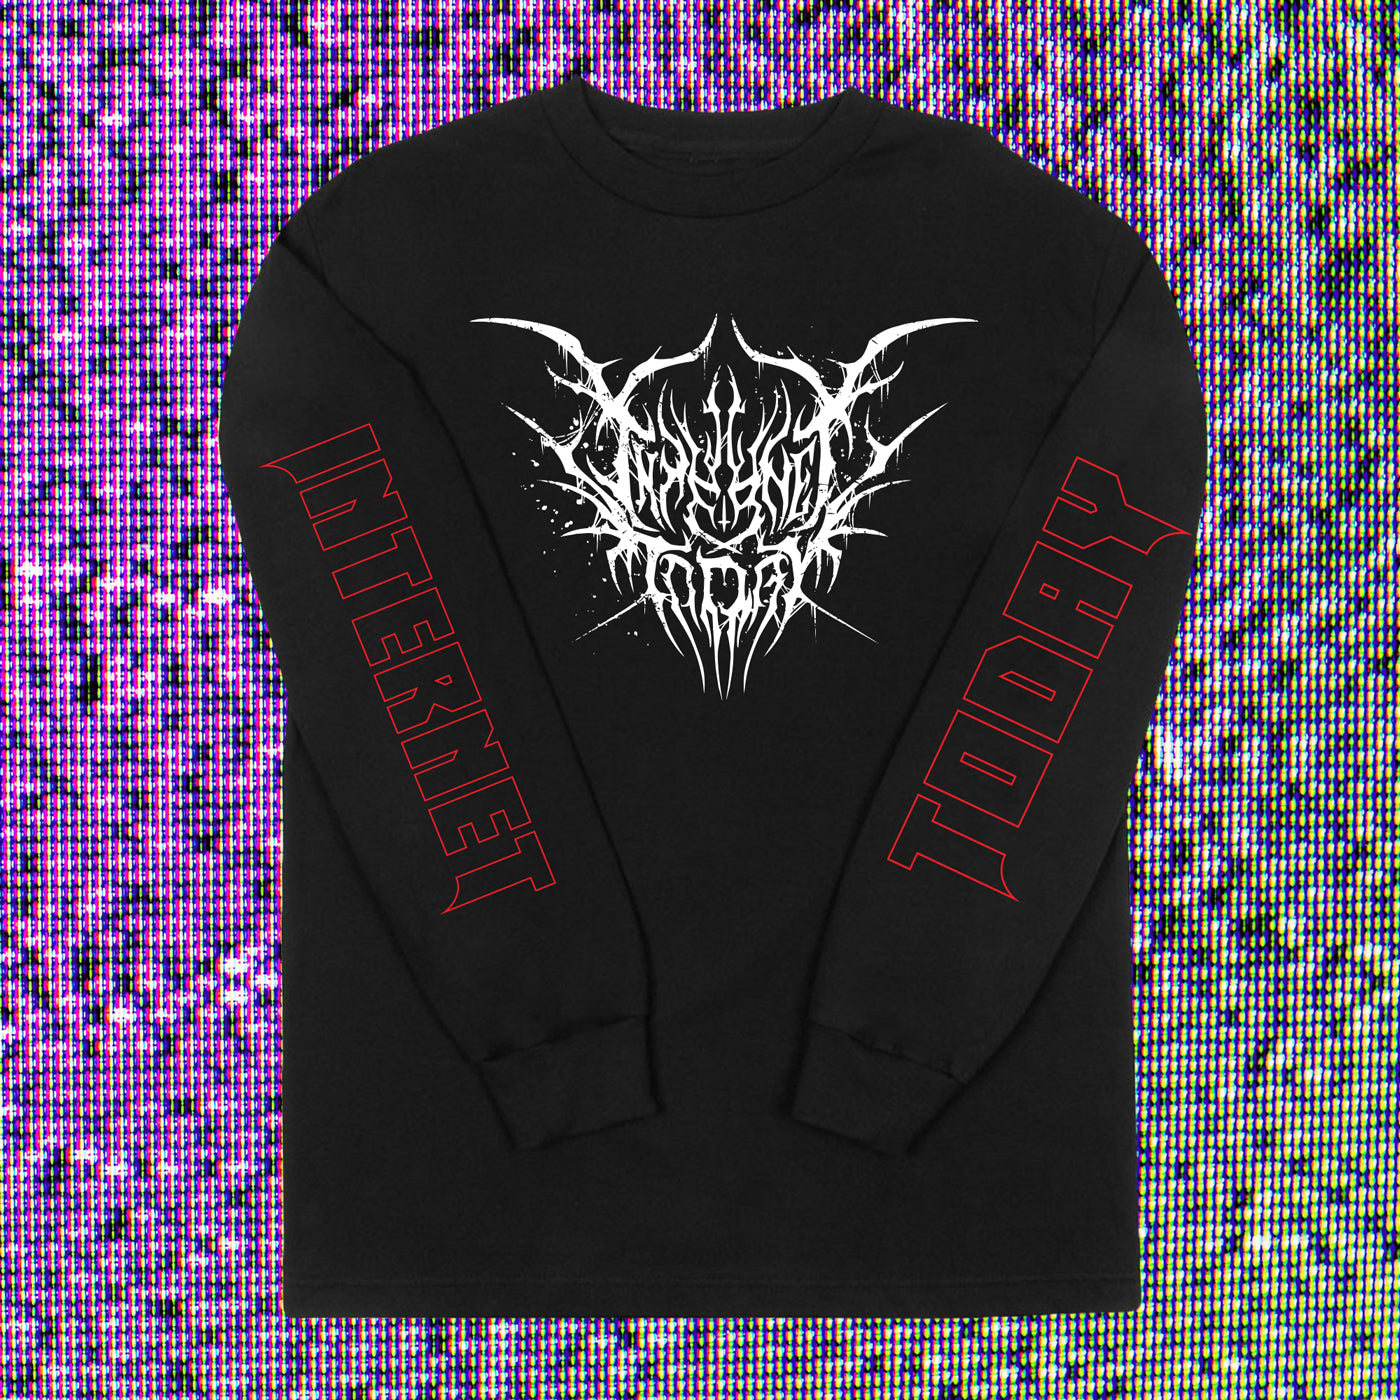 INTERNET TODAY® | BLACK METAL LONG SLEEVE TEE (BLACK) LIMITED EDITION